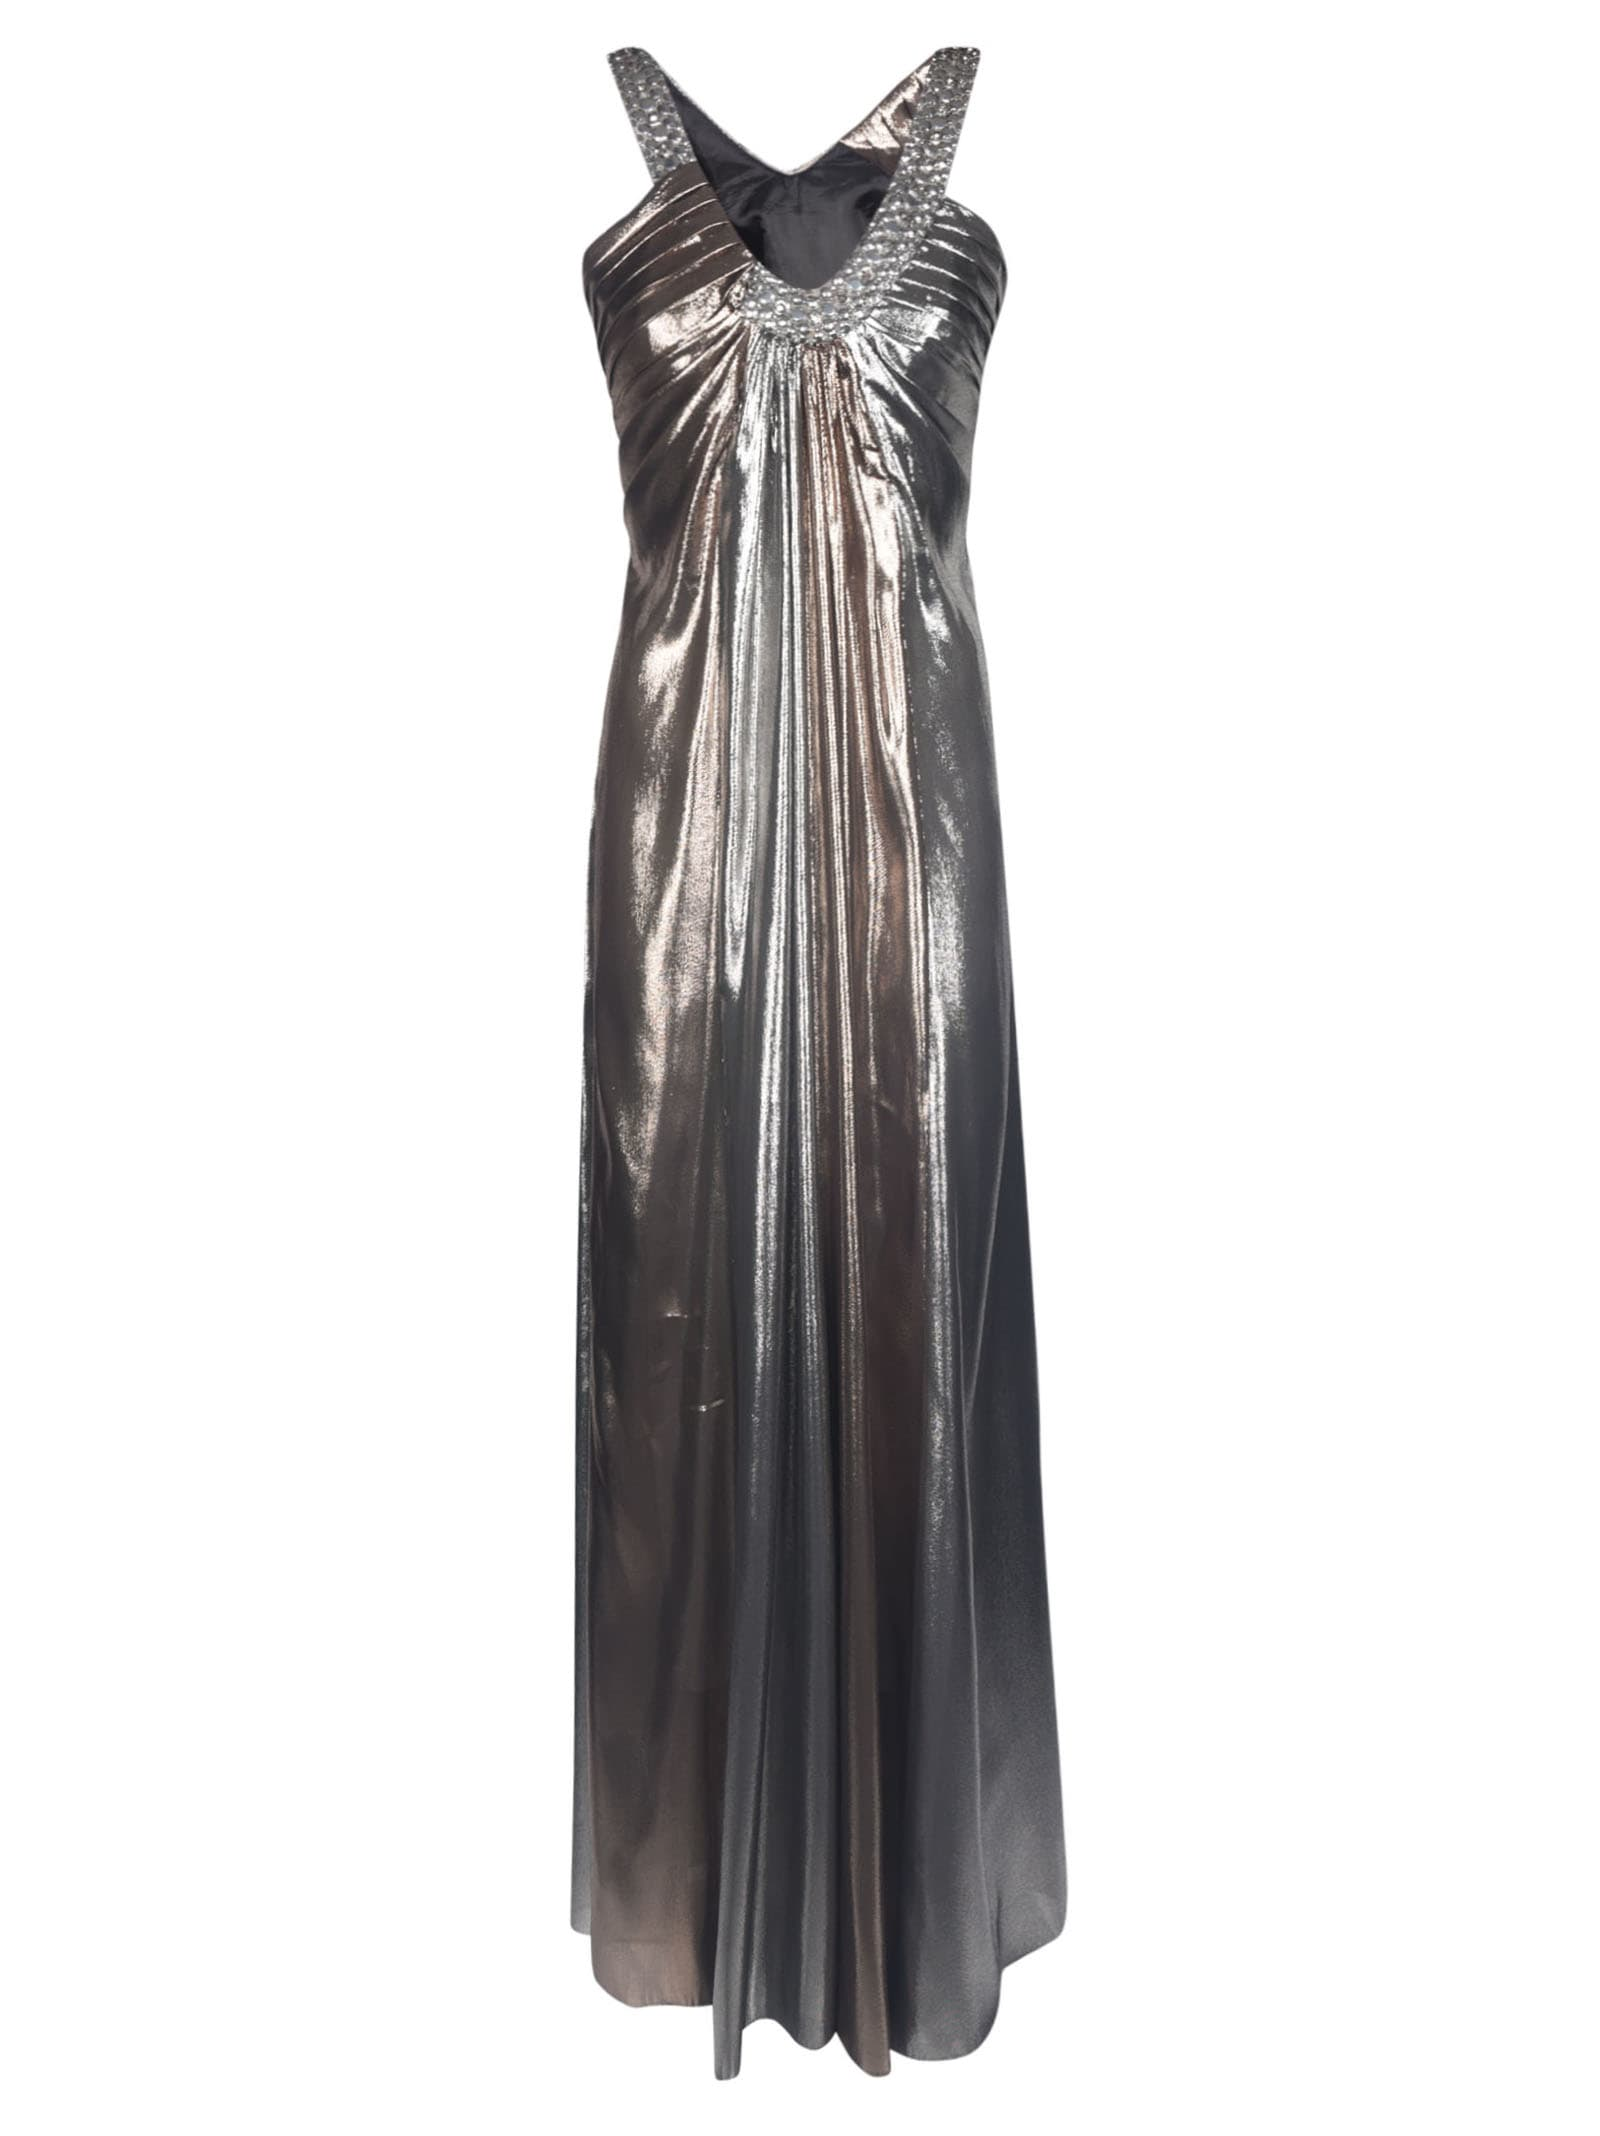 Alberta Ferretti Metallic Long Sleeveless Dress